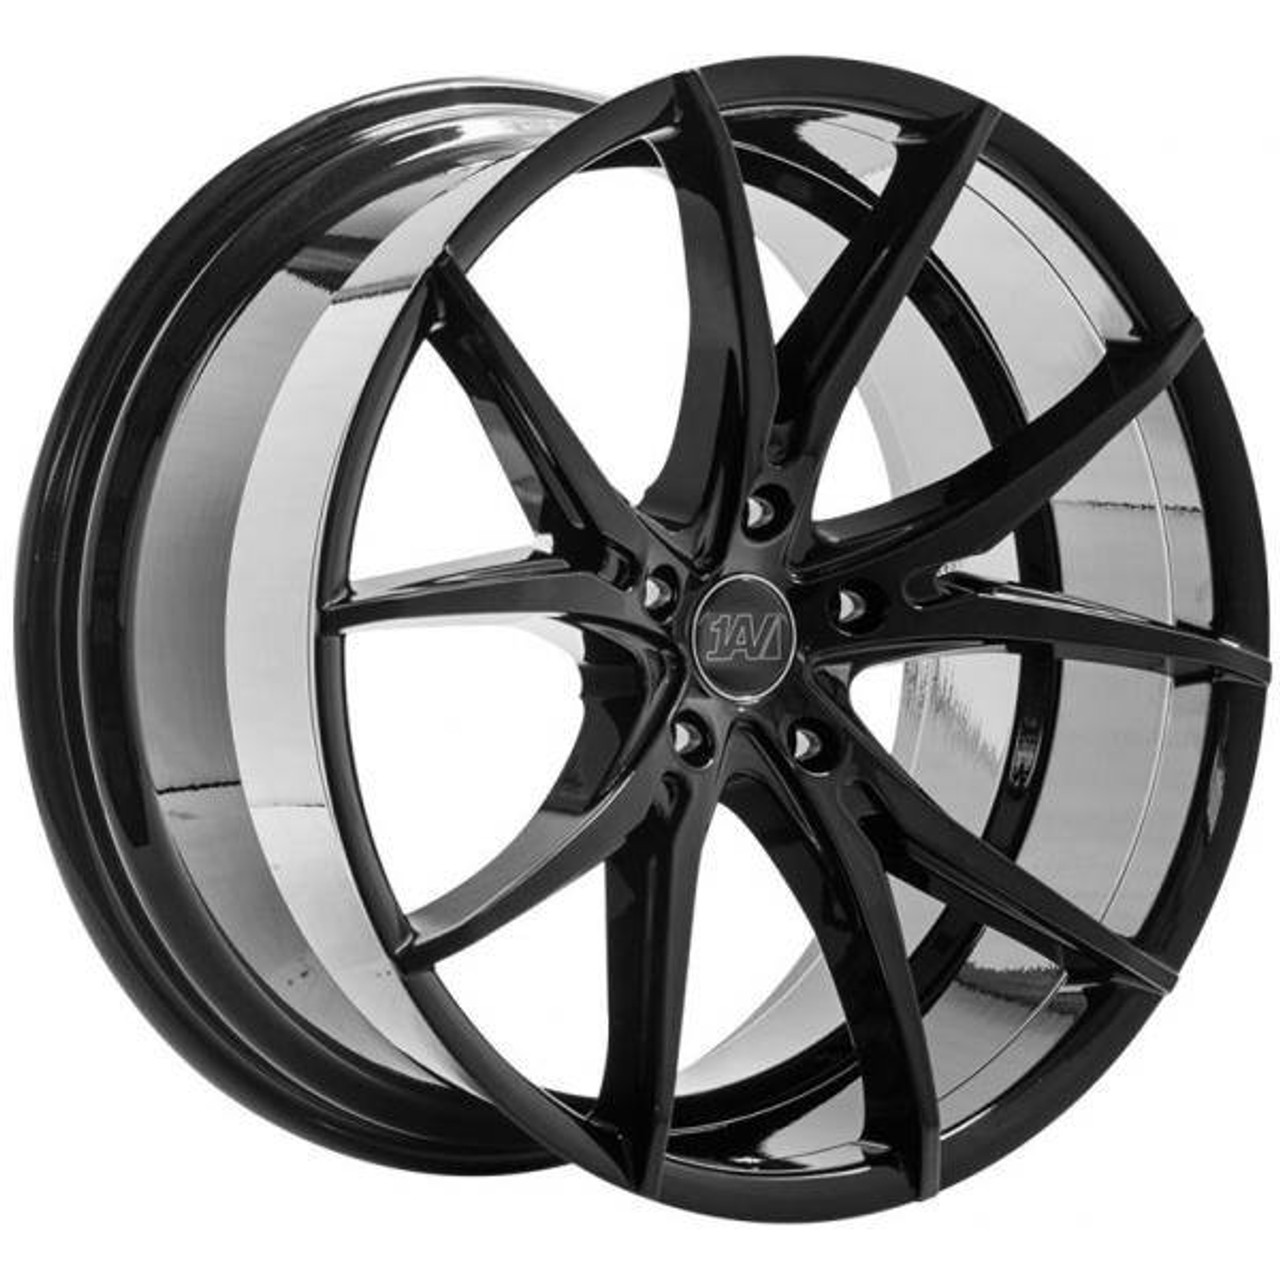 1AV ZX5 Alloy Wheels Gloss Black